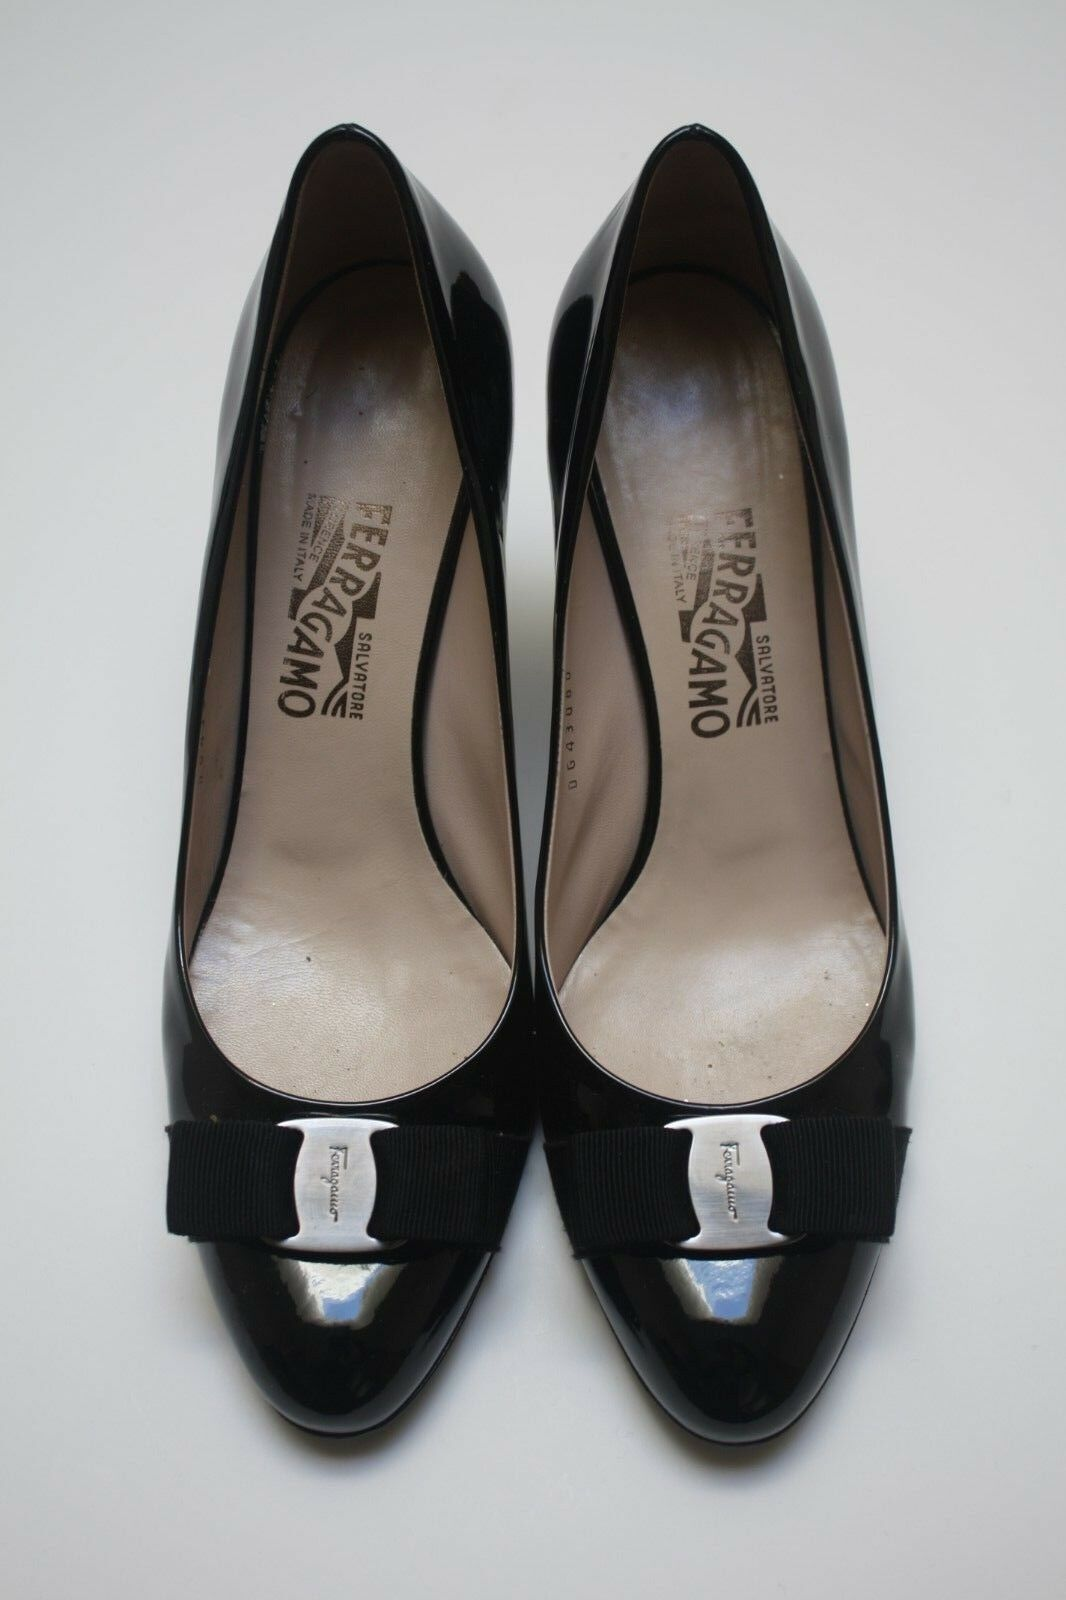 Salvatore Ferragamo Carla Bow Black Patent Leather Pumps black Silver 10.5 B